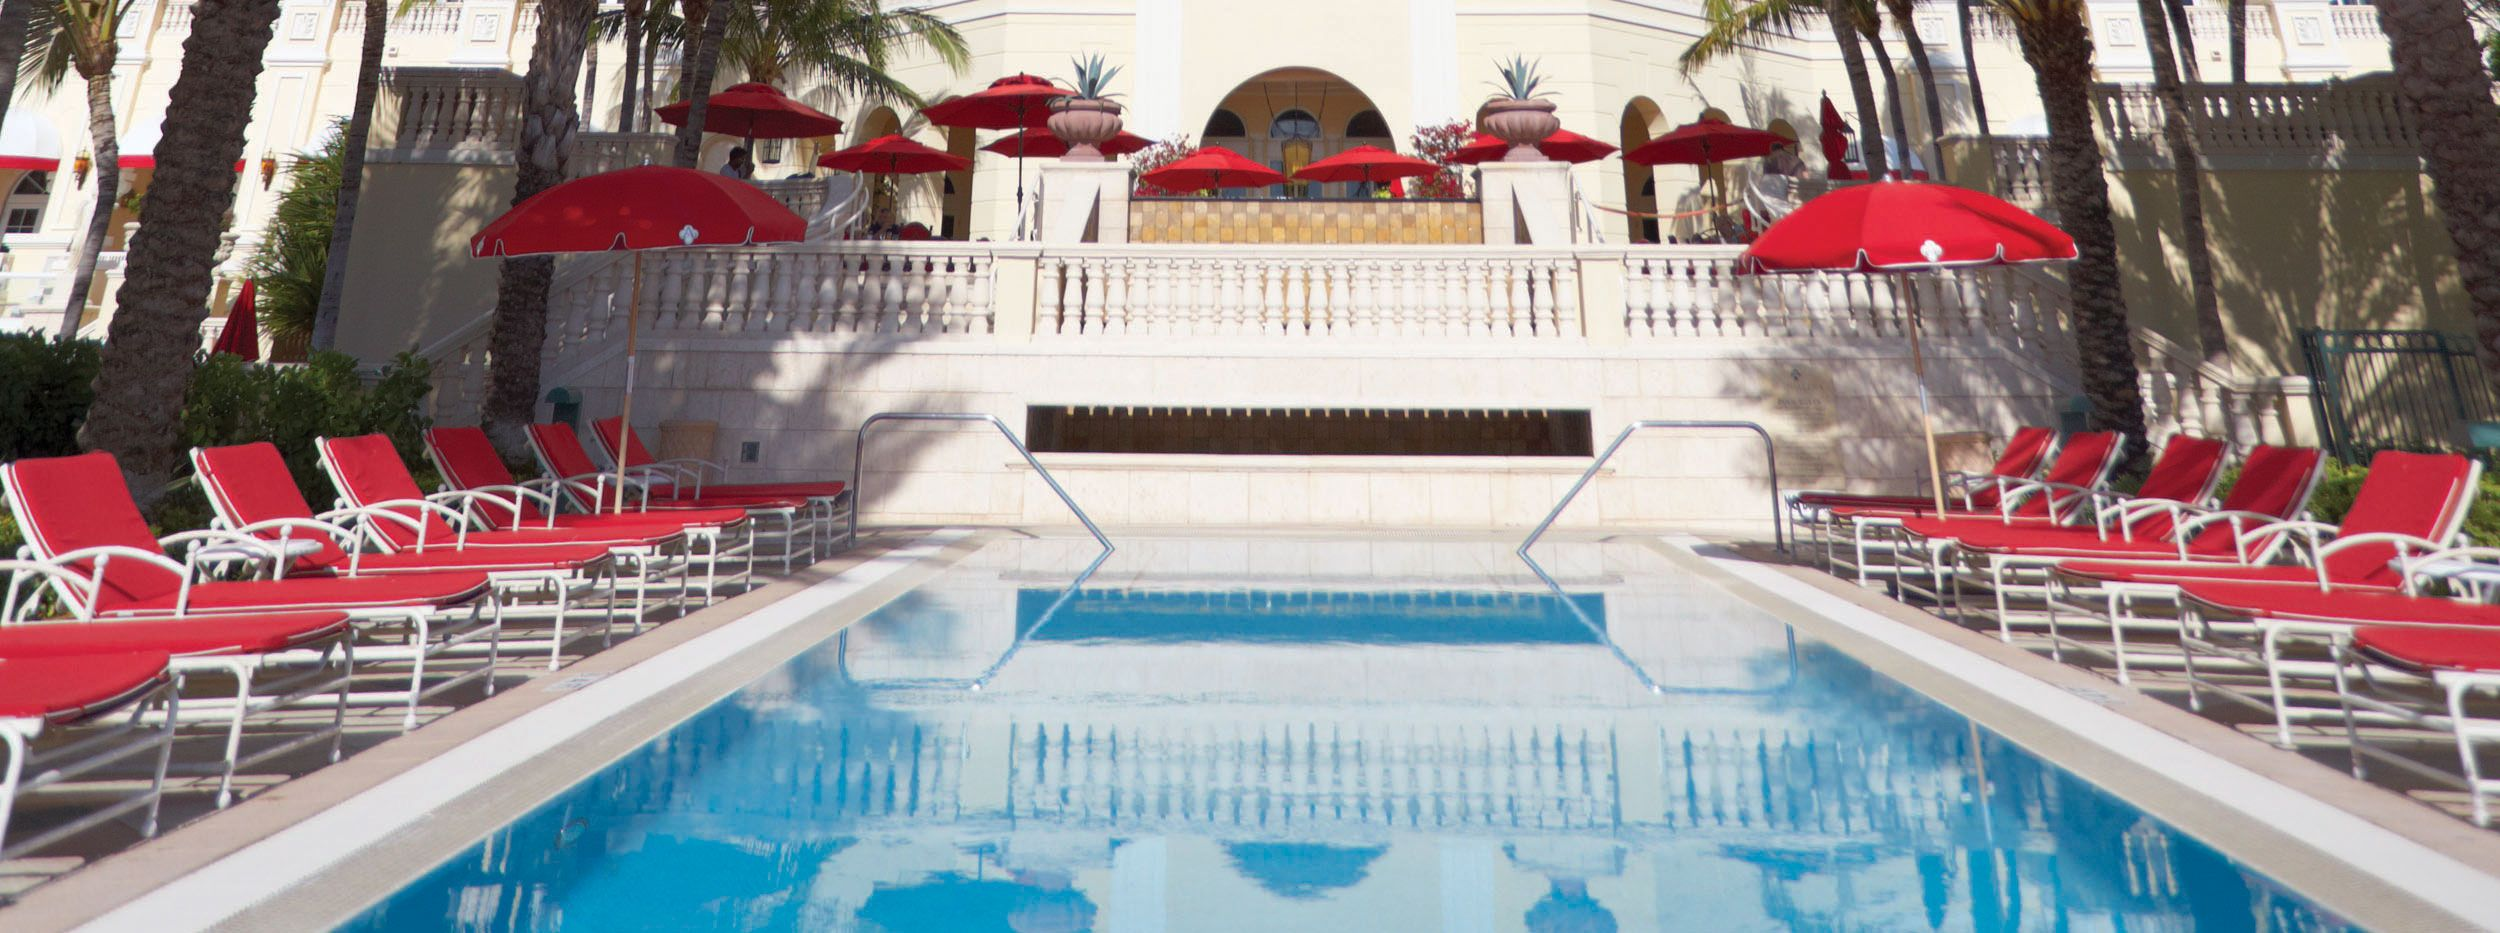 Miami Beach Luxury Resort Acqualina Spa On The